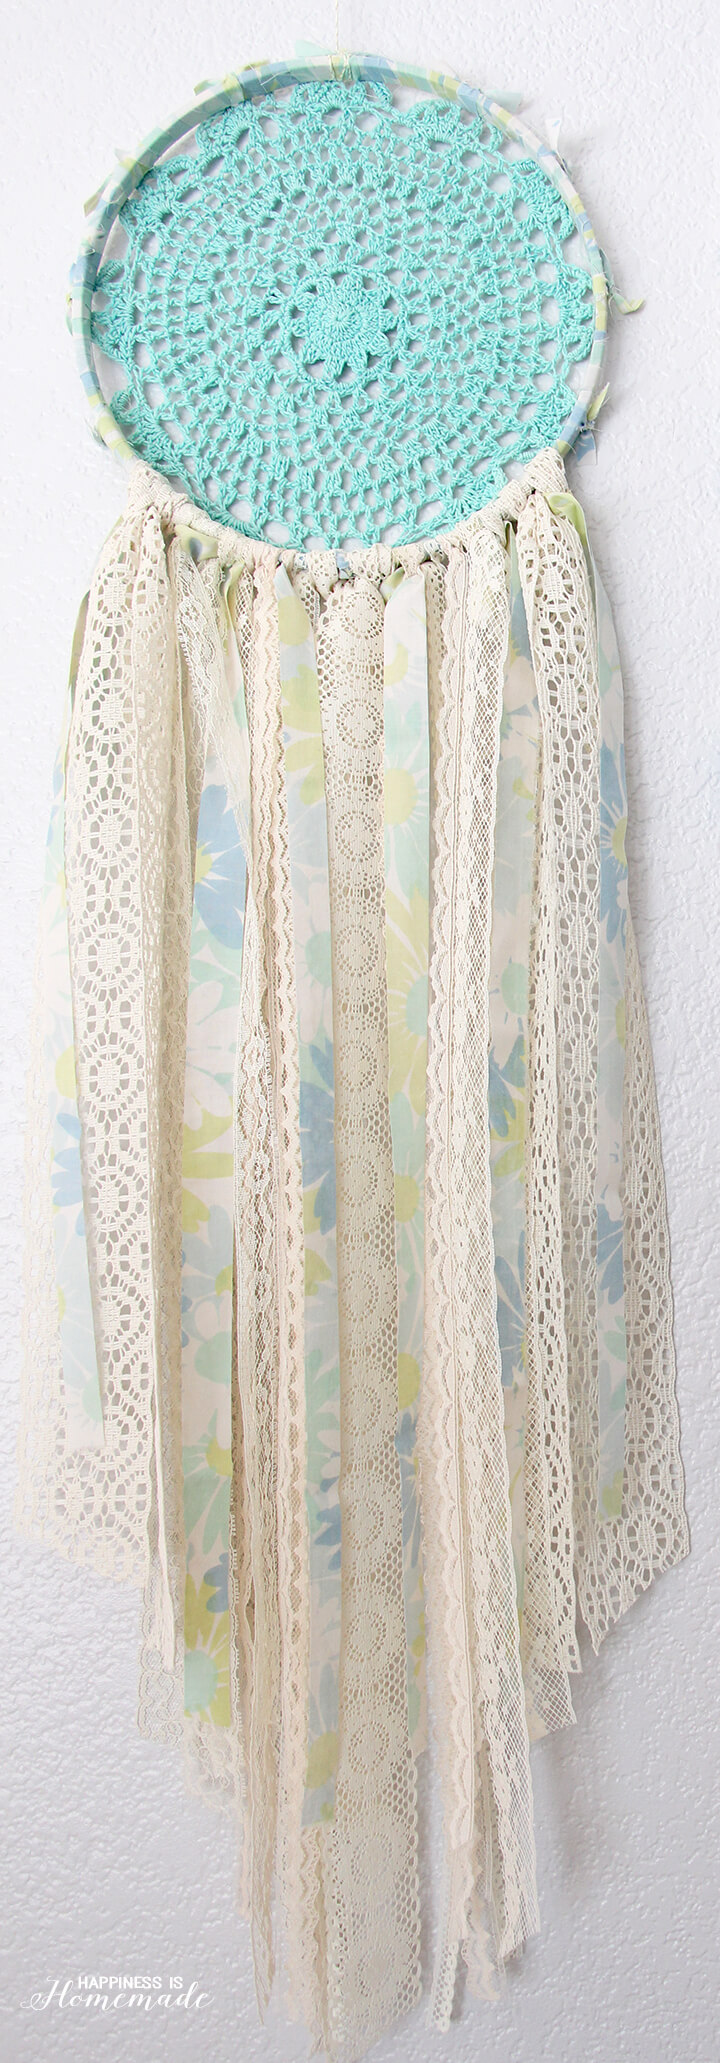 Vintage Sheet and Lace Doily Dream Catcher